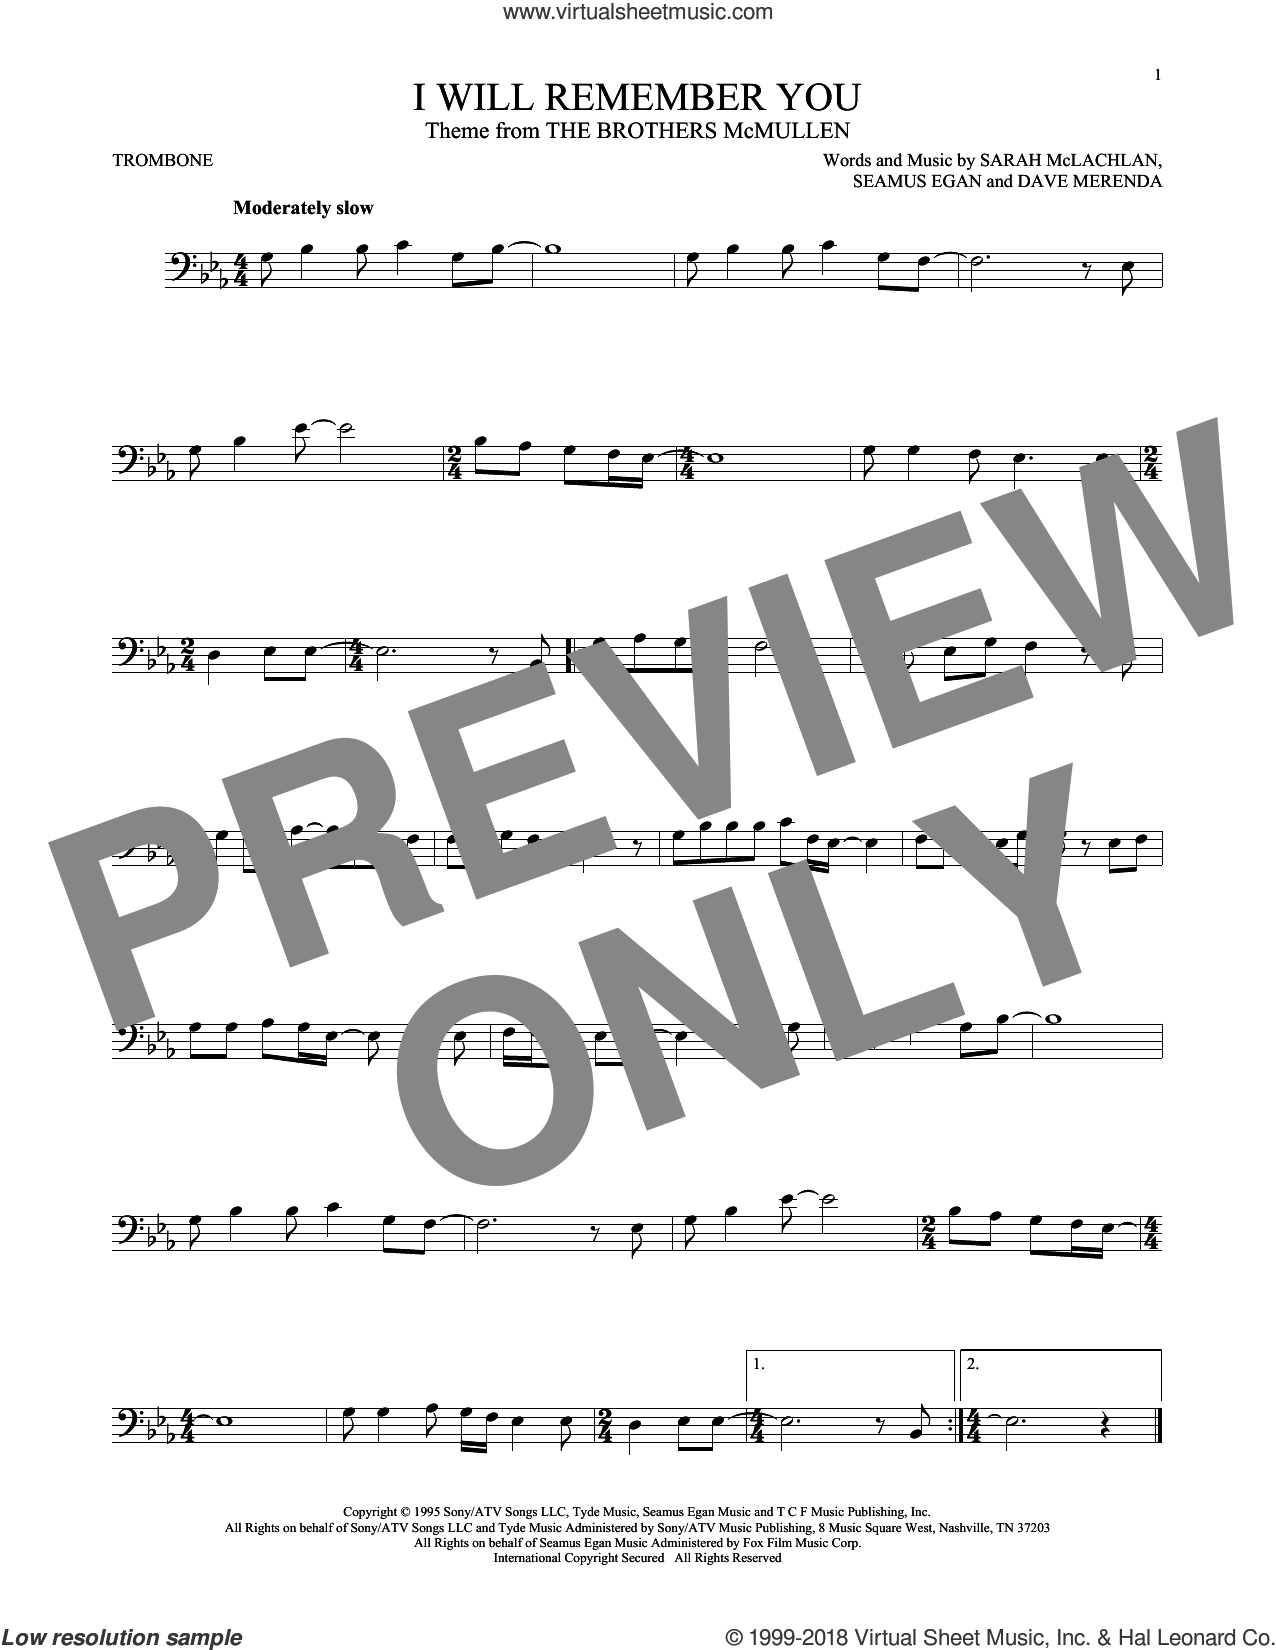 I Will Remember You sheet music for trombone solo by Sarah McLachlan, Dave Merenda and Seamus Egan, intermediate skill level